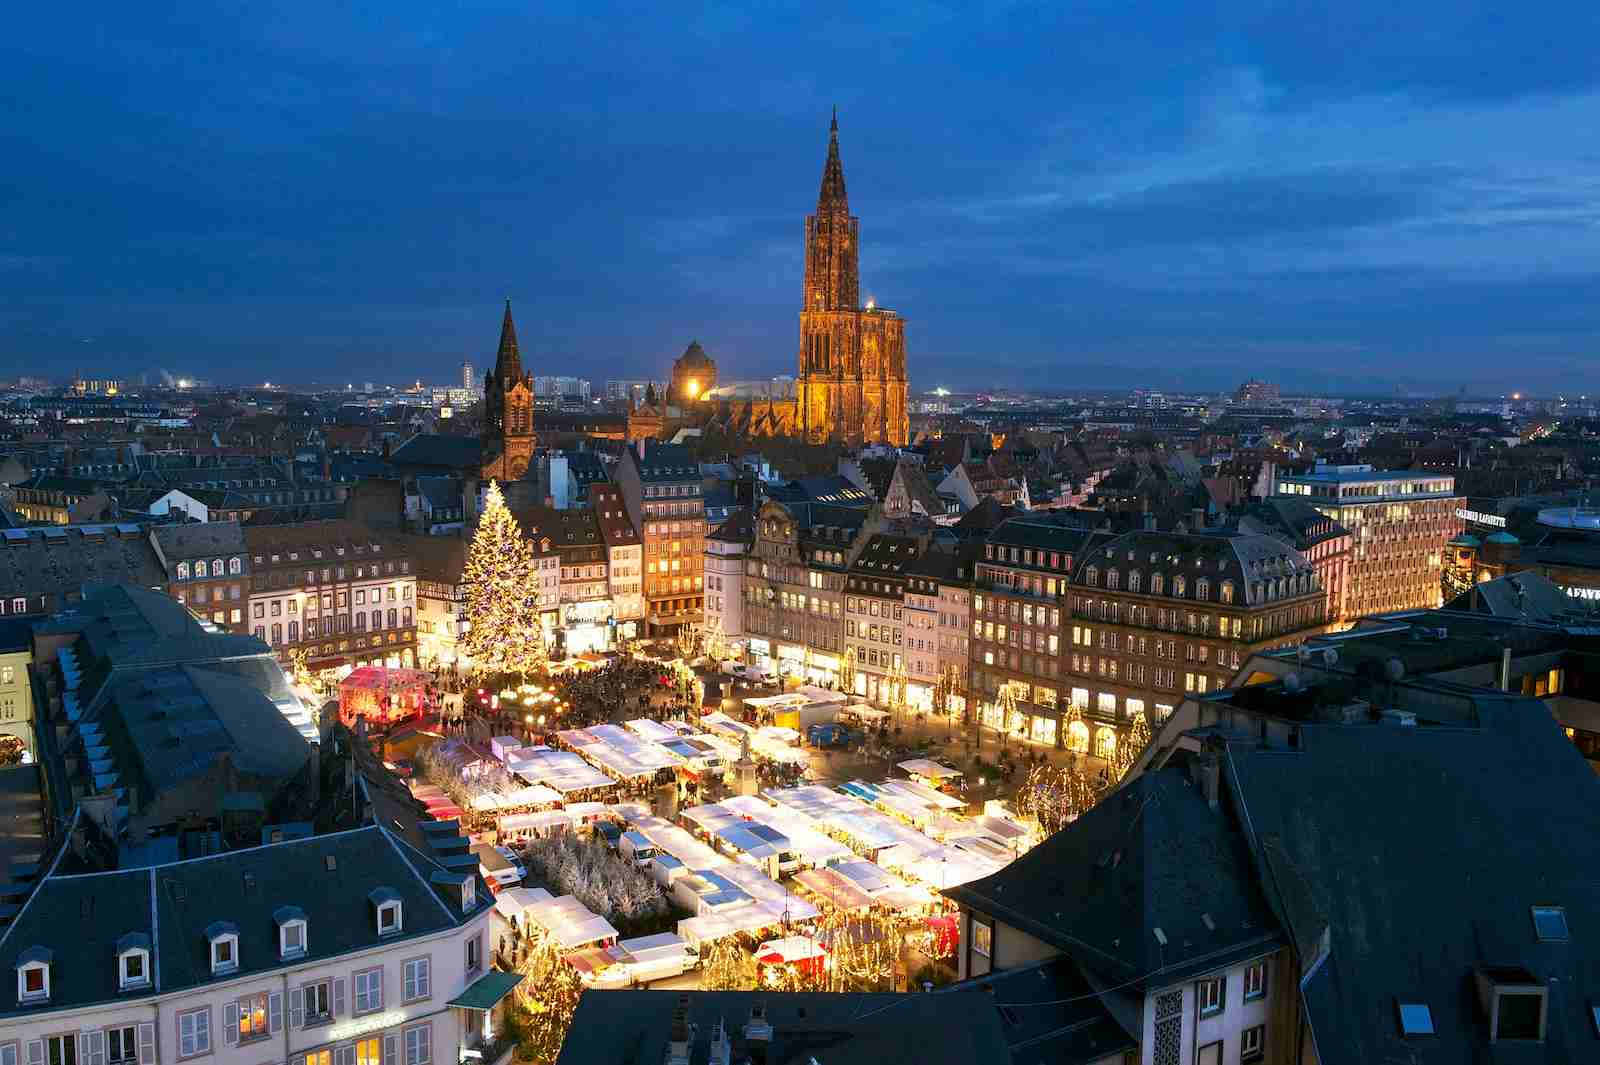 The Place Kleber Christmas Market in Strasbourg. (Photo by MATTES Rene/hemis.fr/Getty Images)